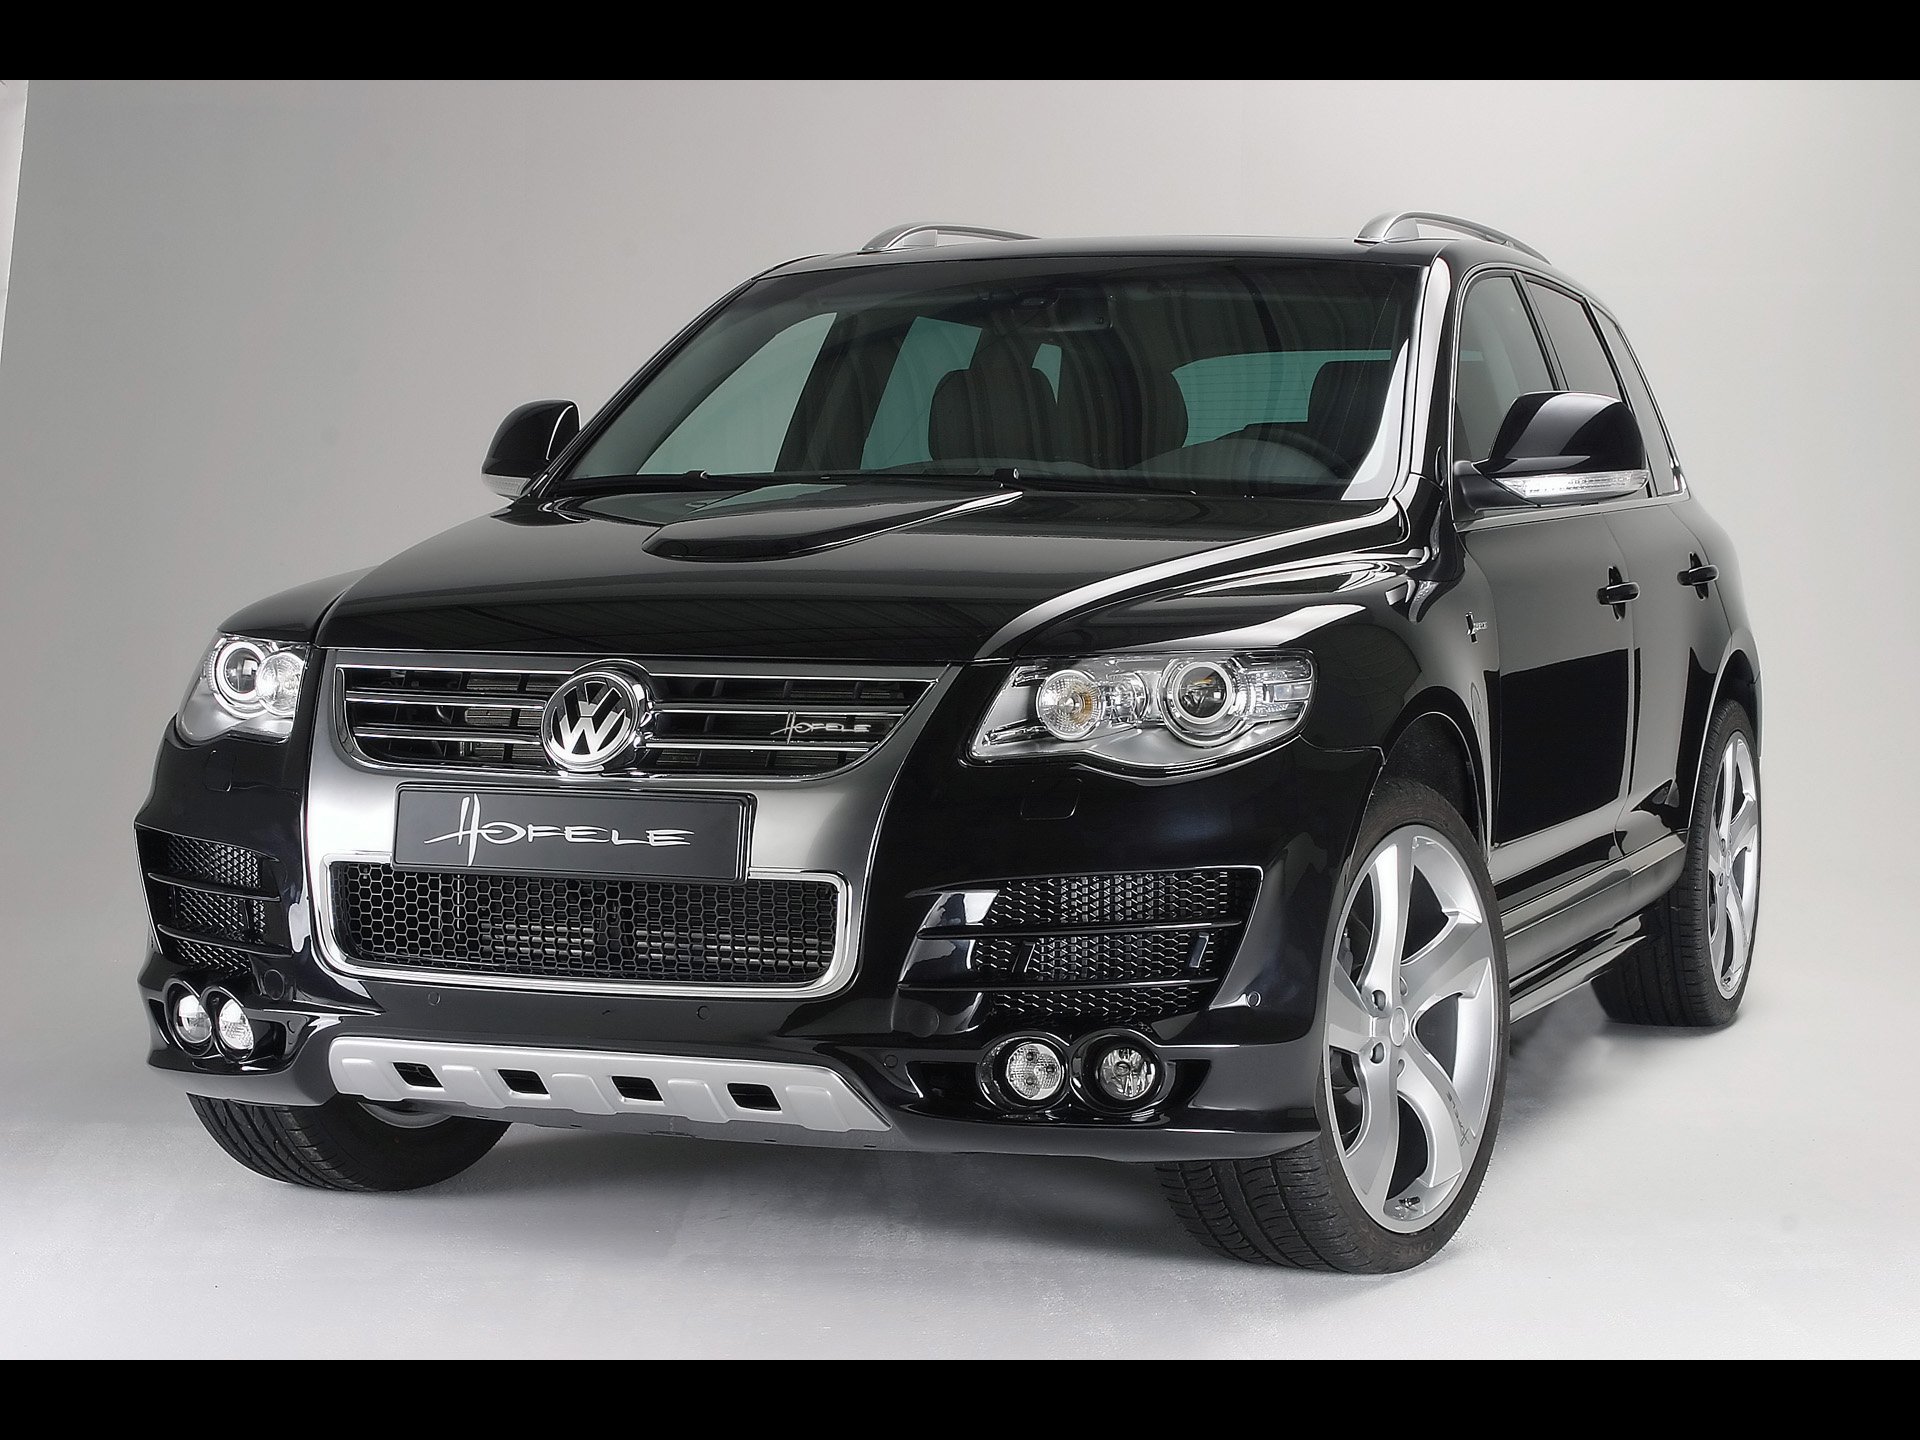 hofele design volkswagen touareg photos photogallery with 7 pics. Black Bedroom Furniture Sets. Home Design Ideas